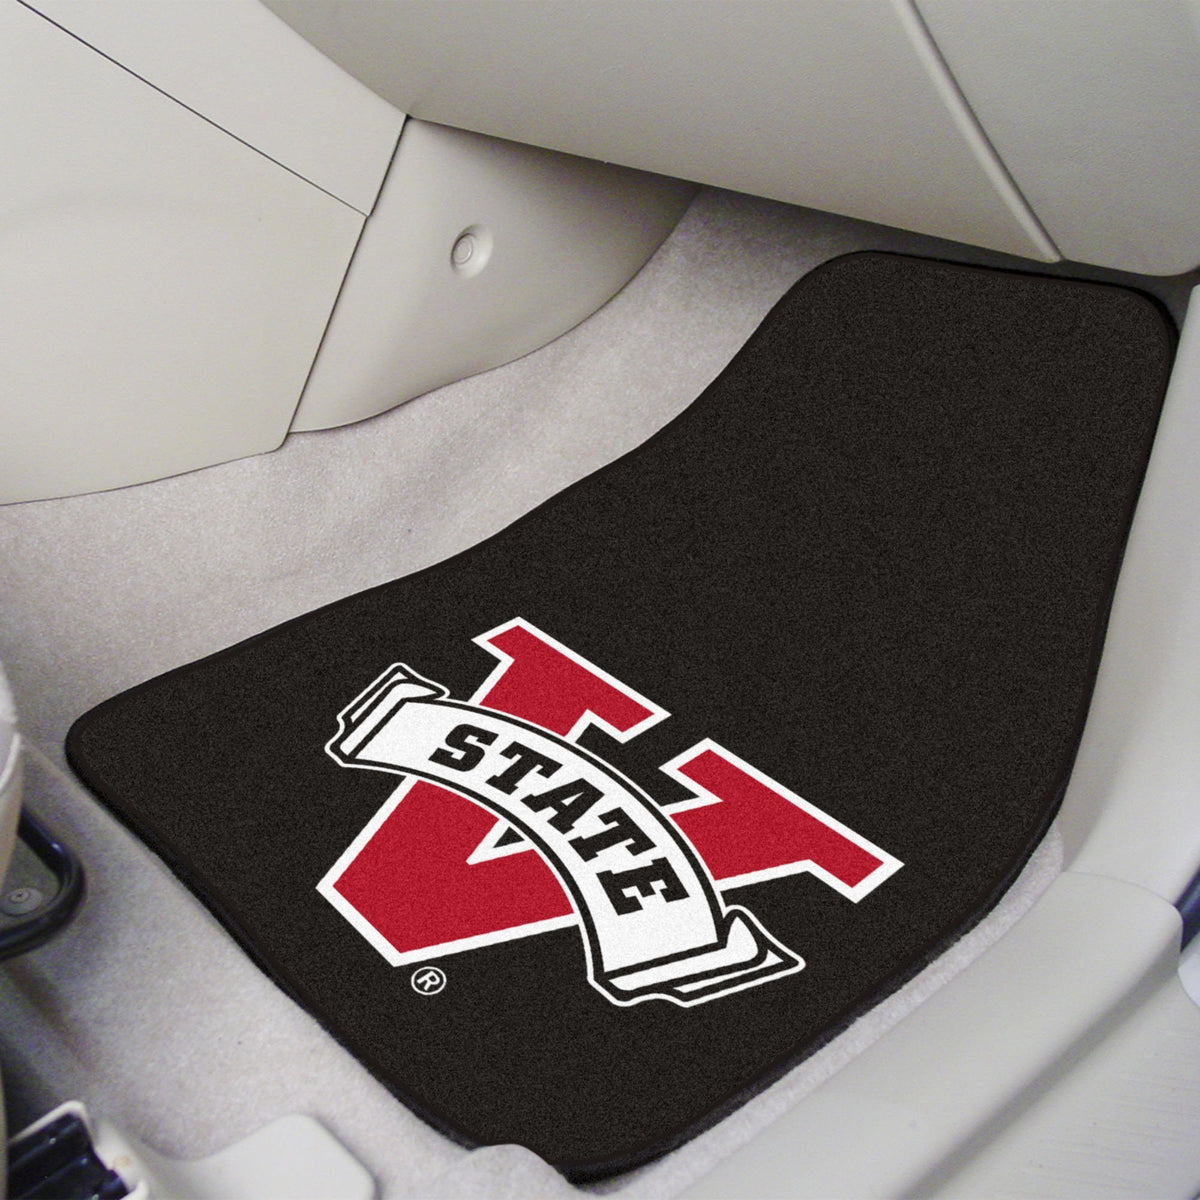 Collegiate - Carpet Car Mat, 2-Piece Set: T - Z Collegiate Car Mat, Front Car Mats, 2-pc Carpet Car Mat Set, Collegiate, Auto Fan Mats Valdosta State